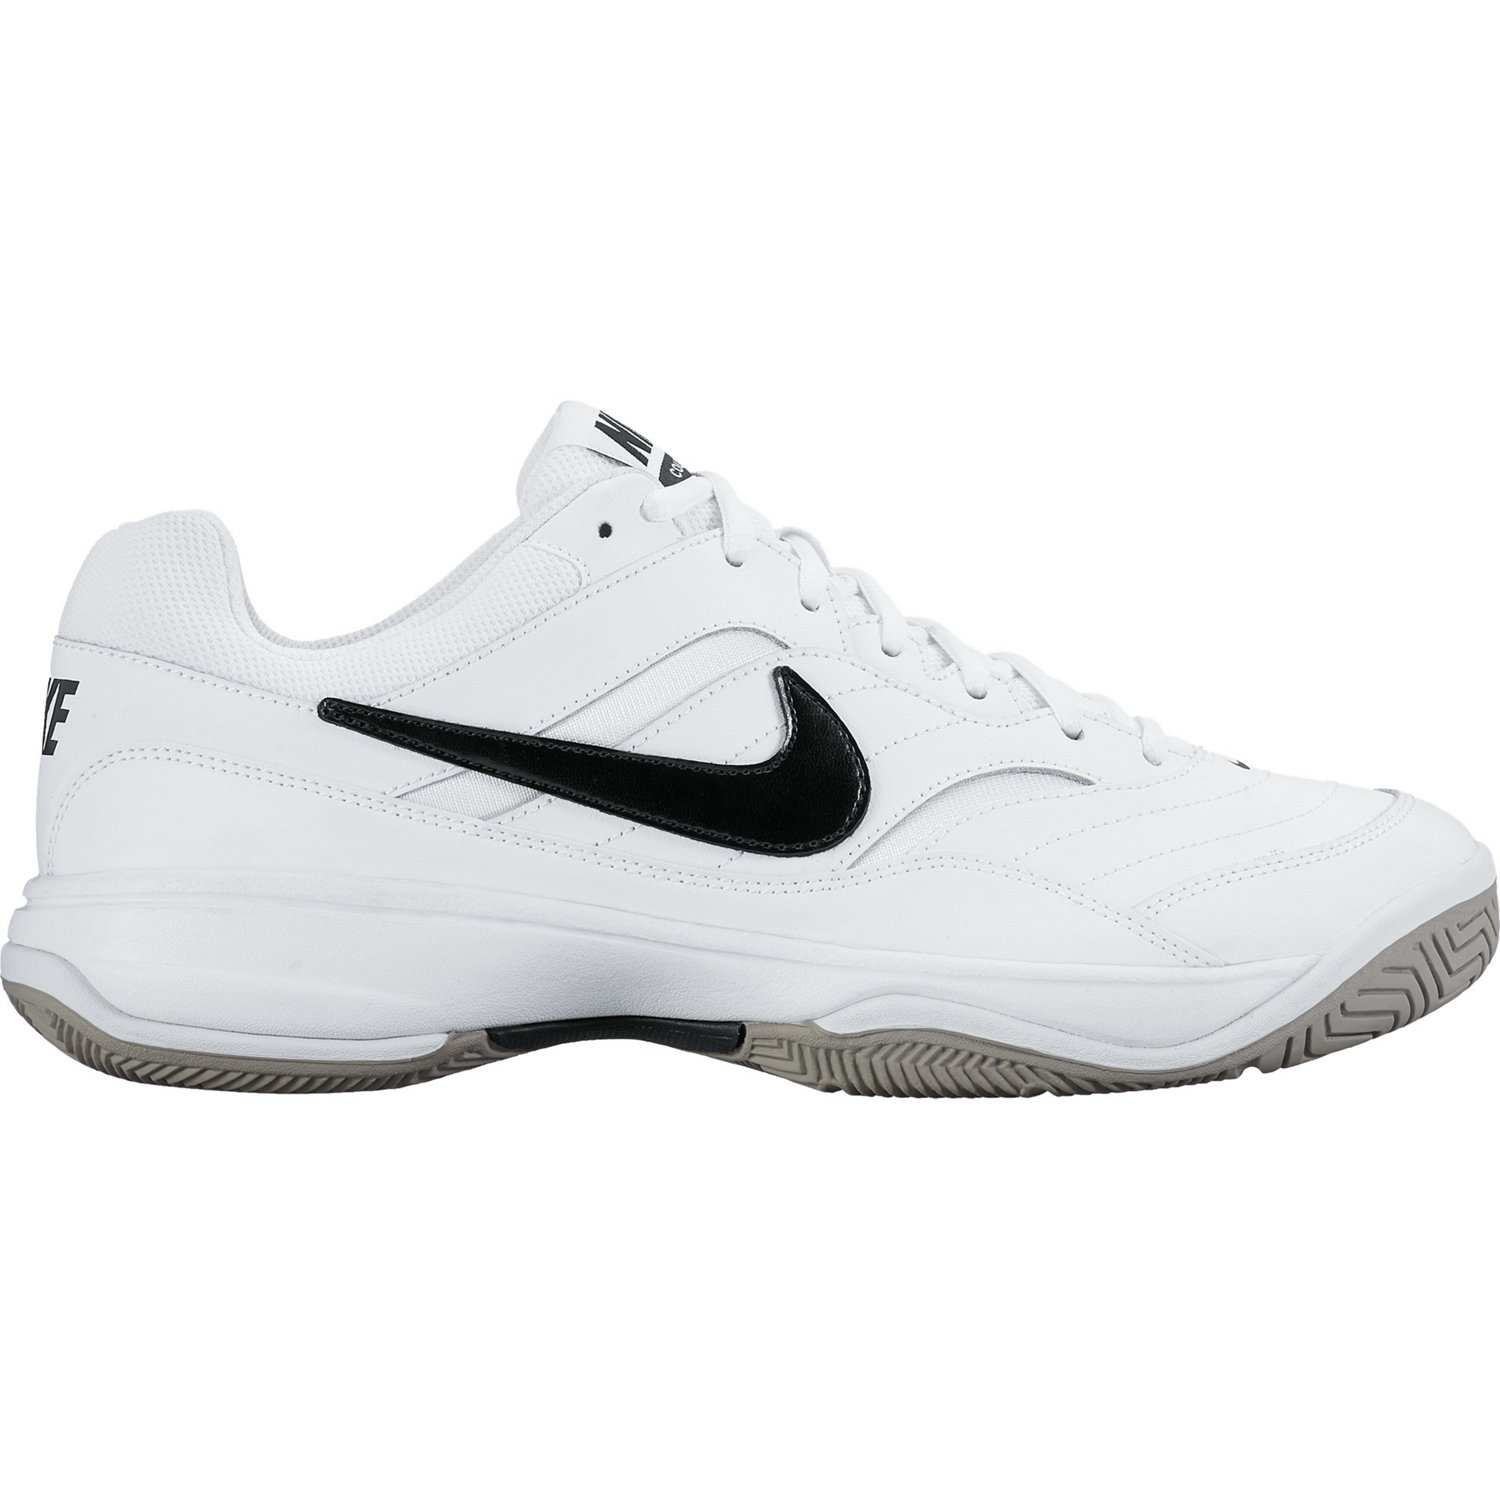 9da397b1027f38 Display product reviews for Nike Men s Court Lite Tennis Shoes